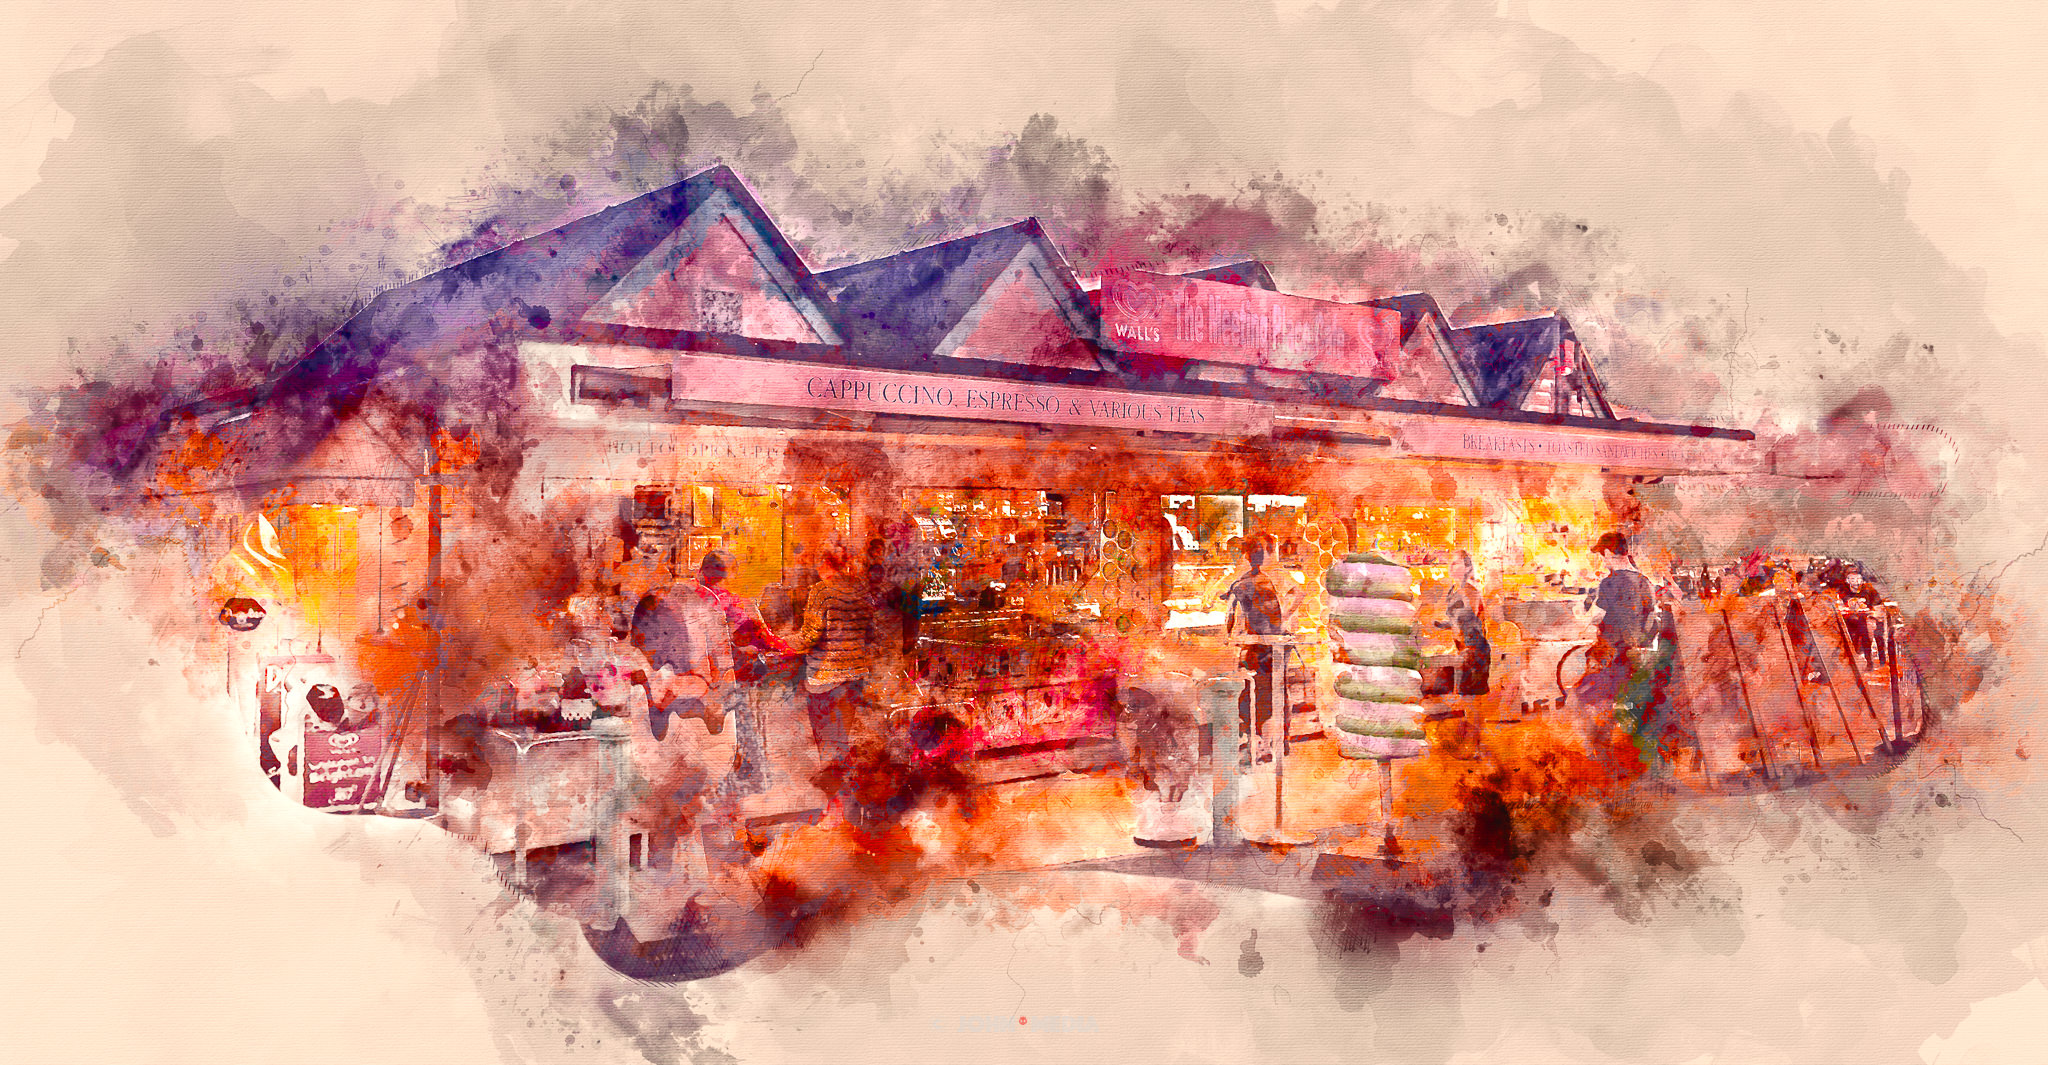 Meeting house cafe - Watercolour